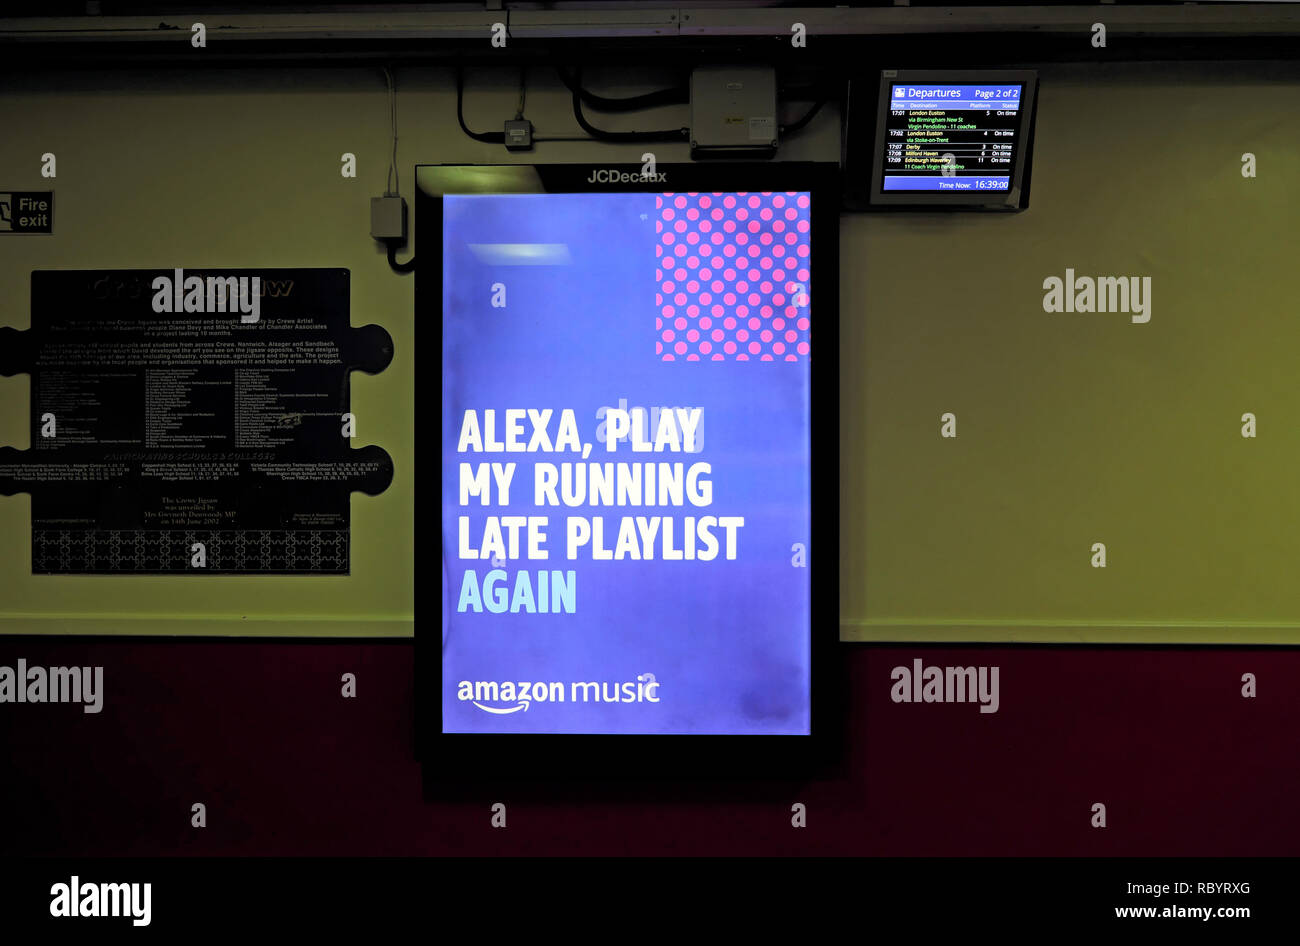 'Alexa Play My Running Late Playlist Again'  Amazon Music advert on an electronic billboard at a railway station in Great Britain UK  KATHY DEWITT - Stock Image